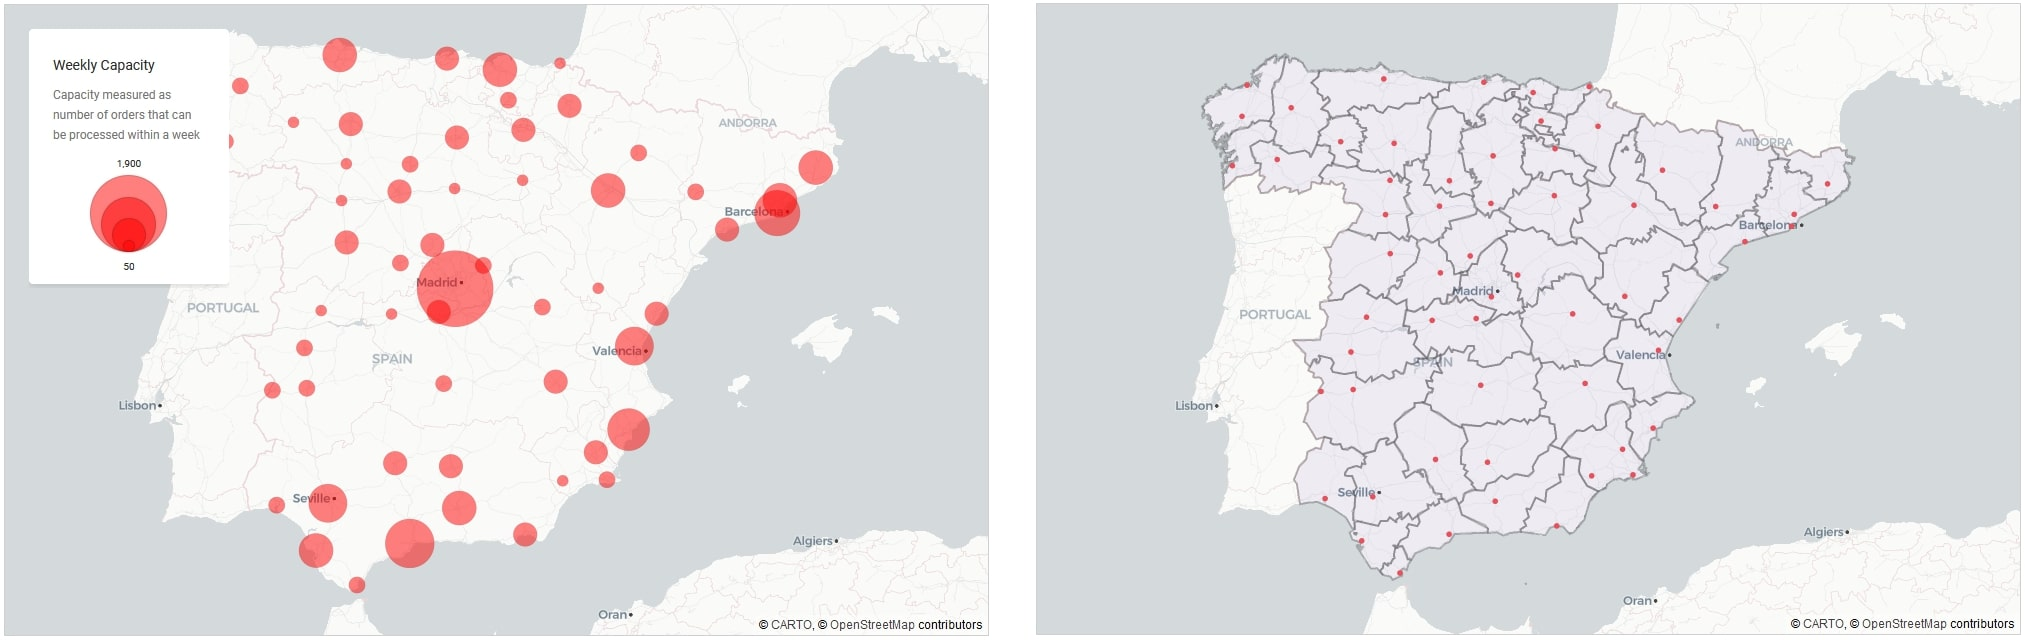 Figure 12: Distribution Centres | Locations and capacity (left panel), and current operational areas (right panel)